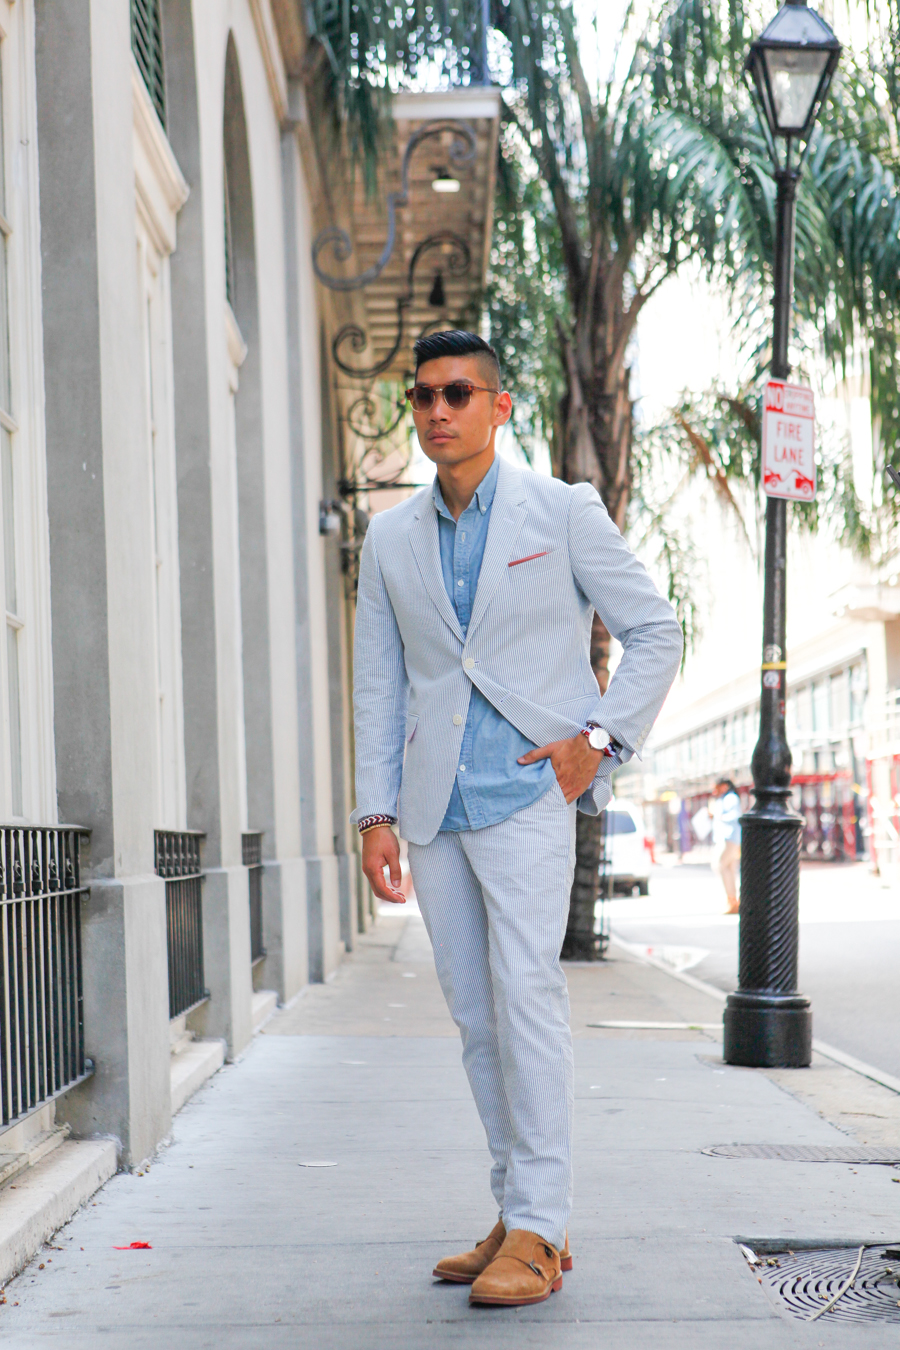 Levitate Style - Haspel Days | Haspel Seersucker Suit at Hyatt French Quarter in New Orleans, menswear, Leo Chan, Alicia Mara